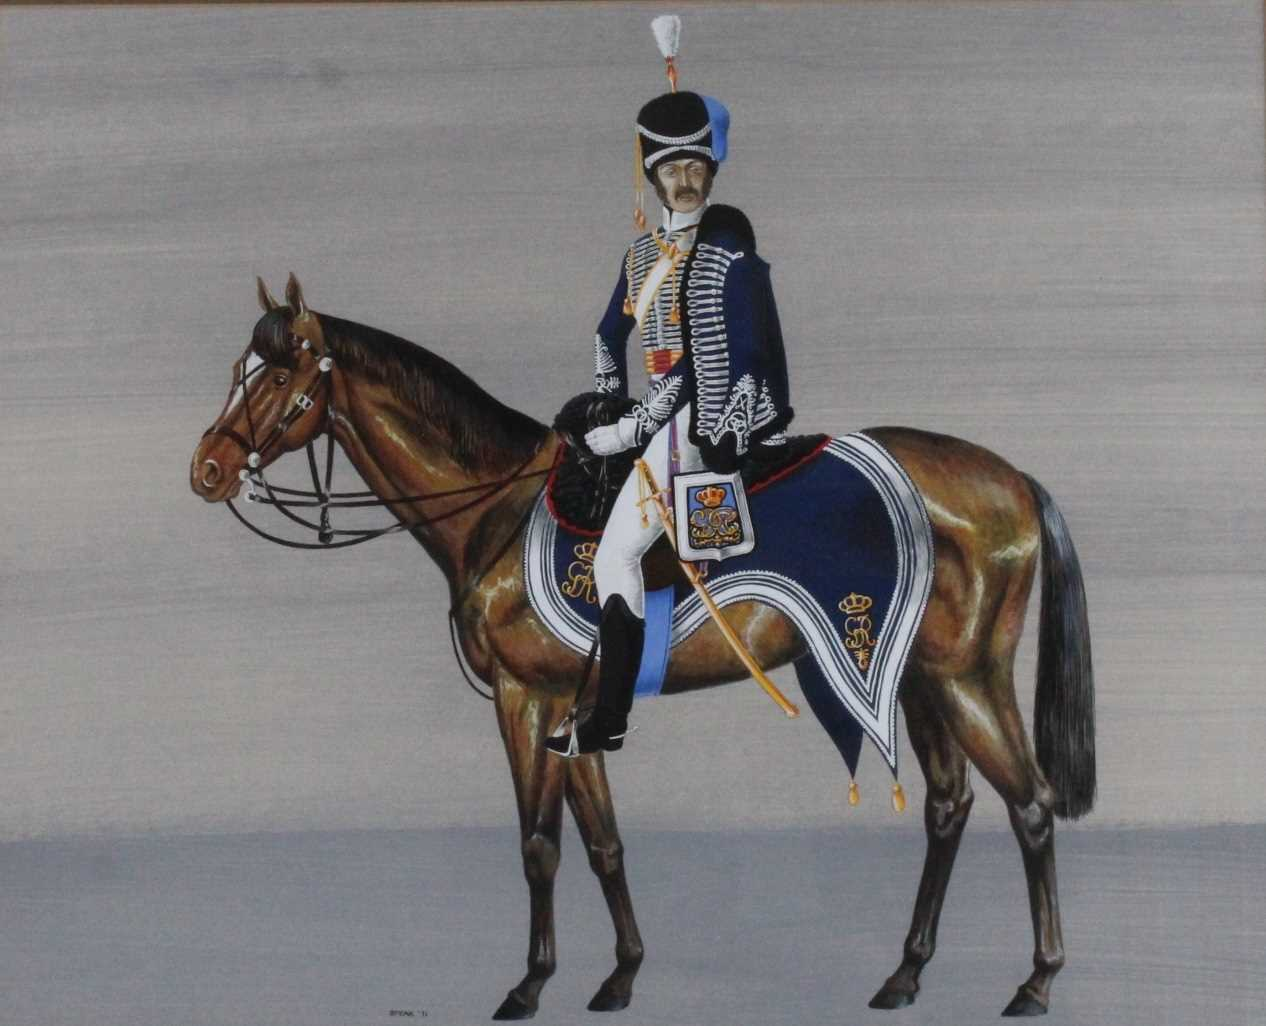 Spear, (20th century), British Officer of the Napoleonic Wars mounted on horseback, gouache, - Image 2 of 4